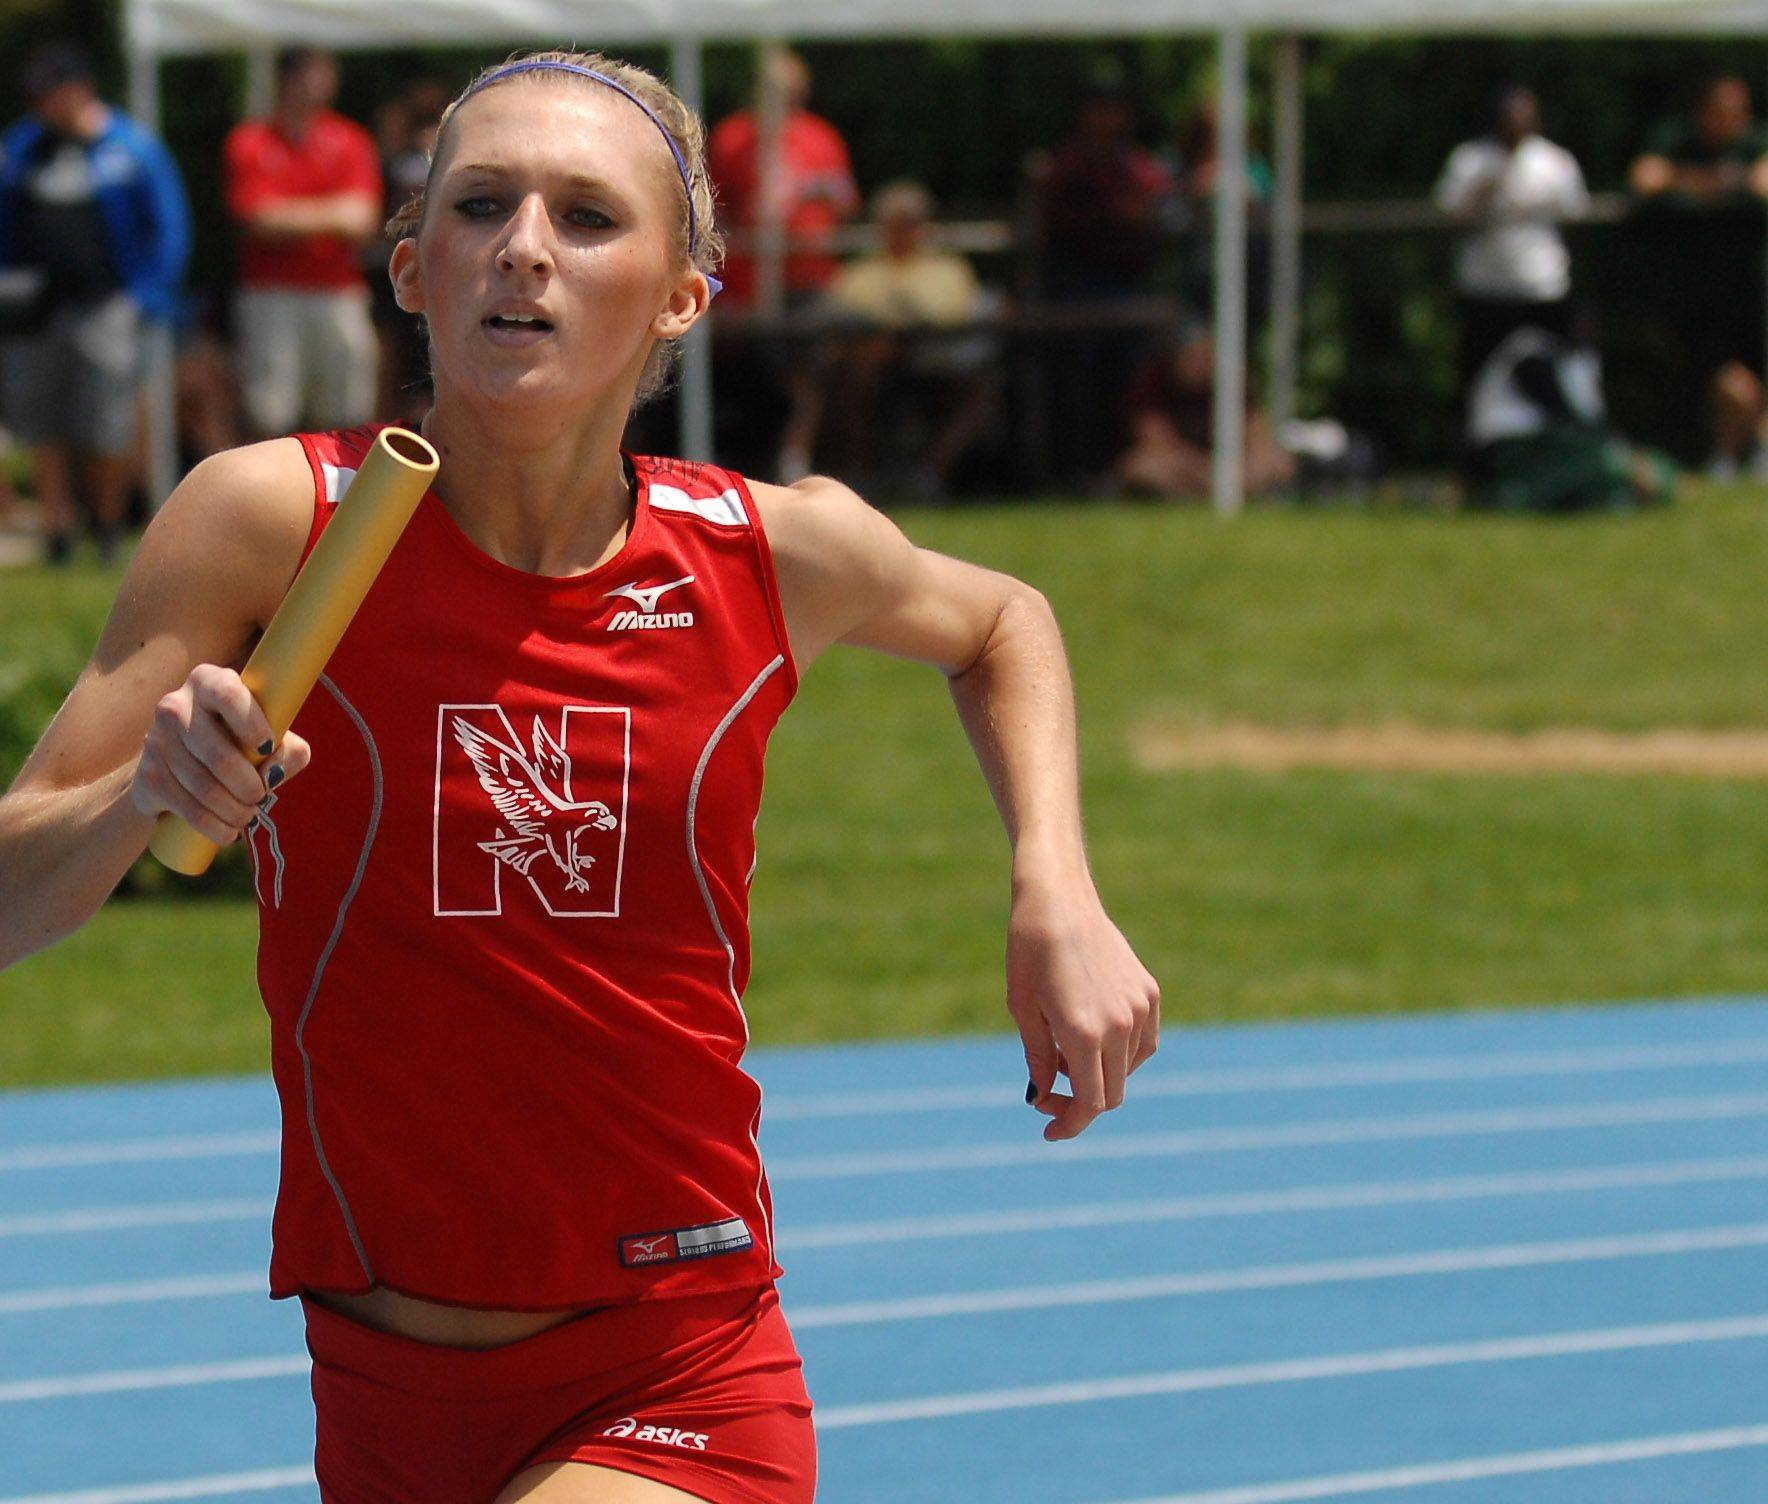 Naperville Central's Kailey Mikulec runs her leg of the 4x800-meter relay.